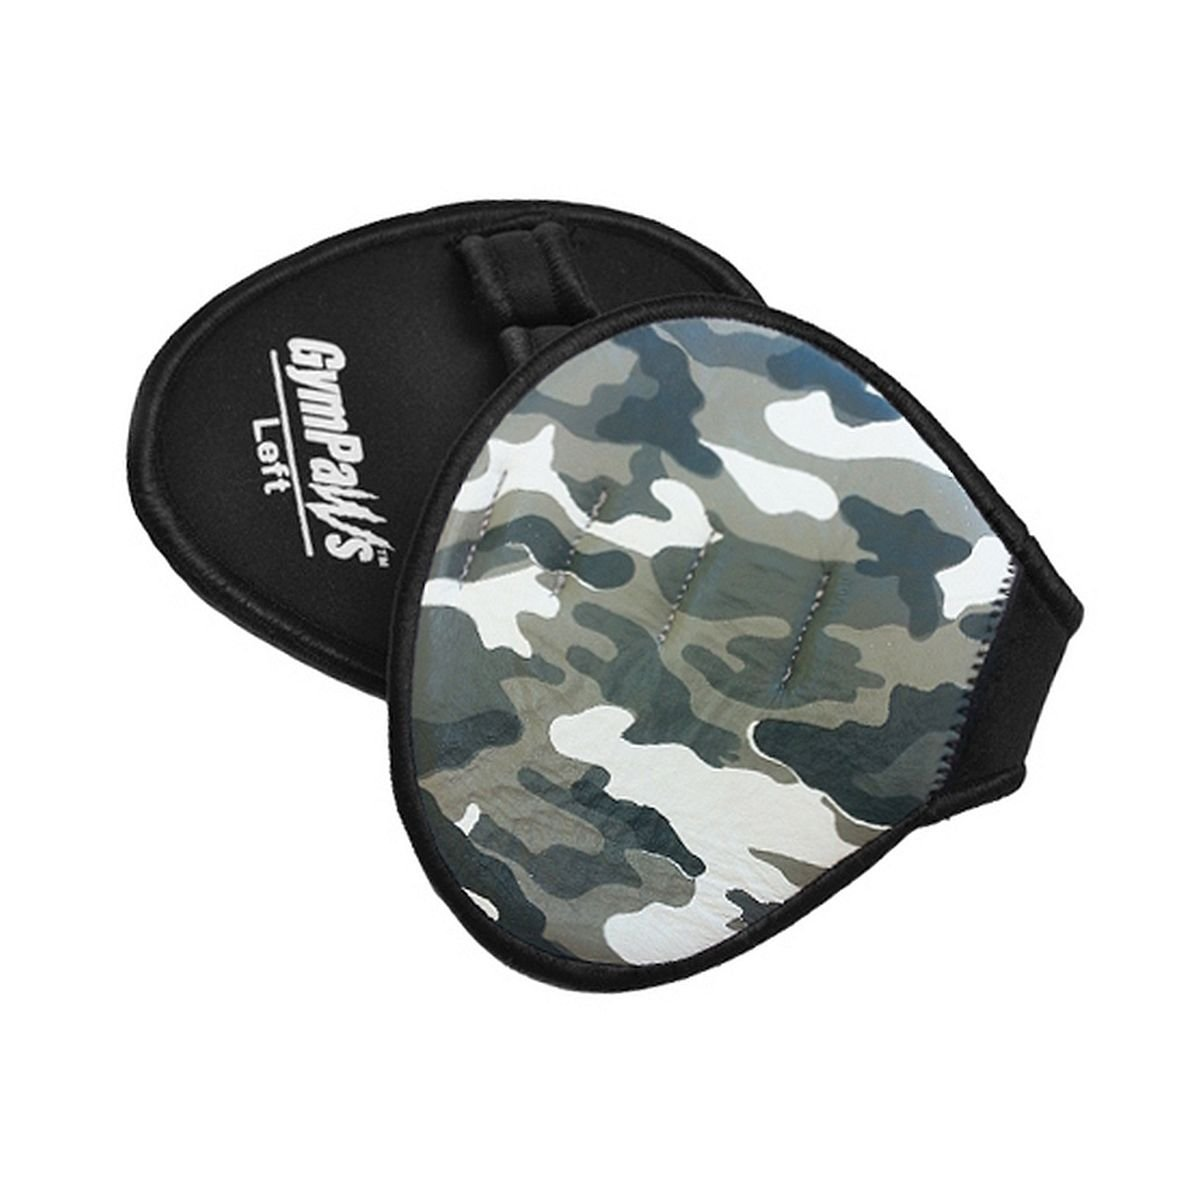 Genuine Leather Hand Pads for Gym | Camo Gym Gloves | Urban Grey Camouflage